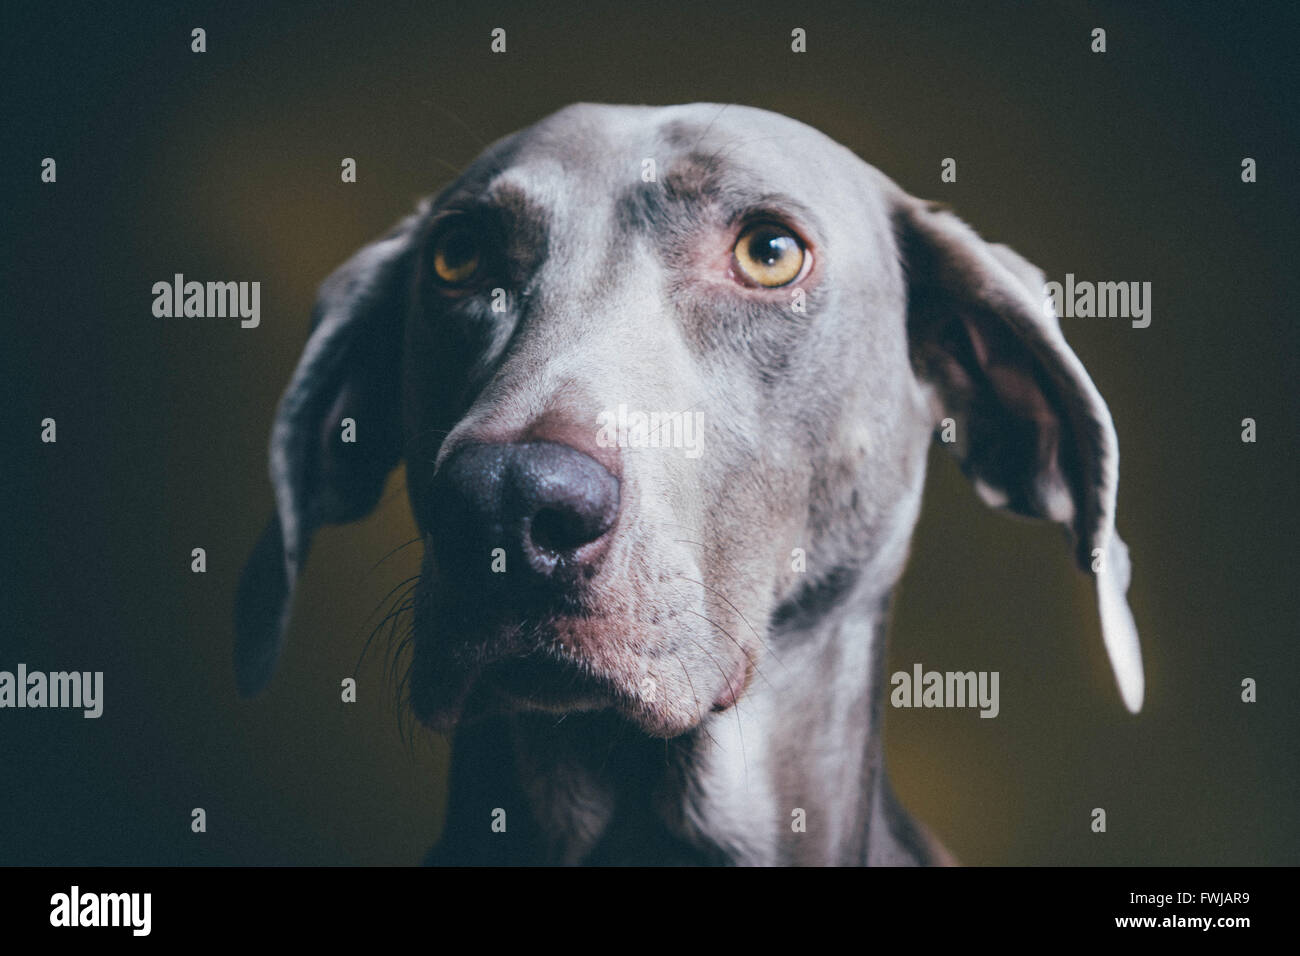 Close-Up Of Weimaraner Looking Away - Stock Image